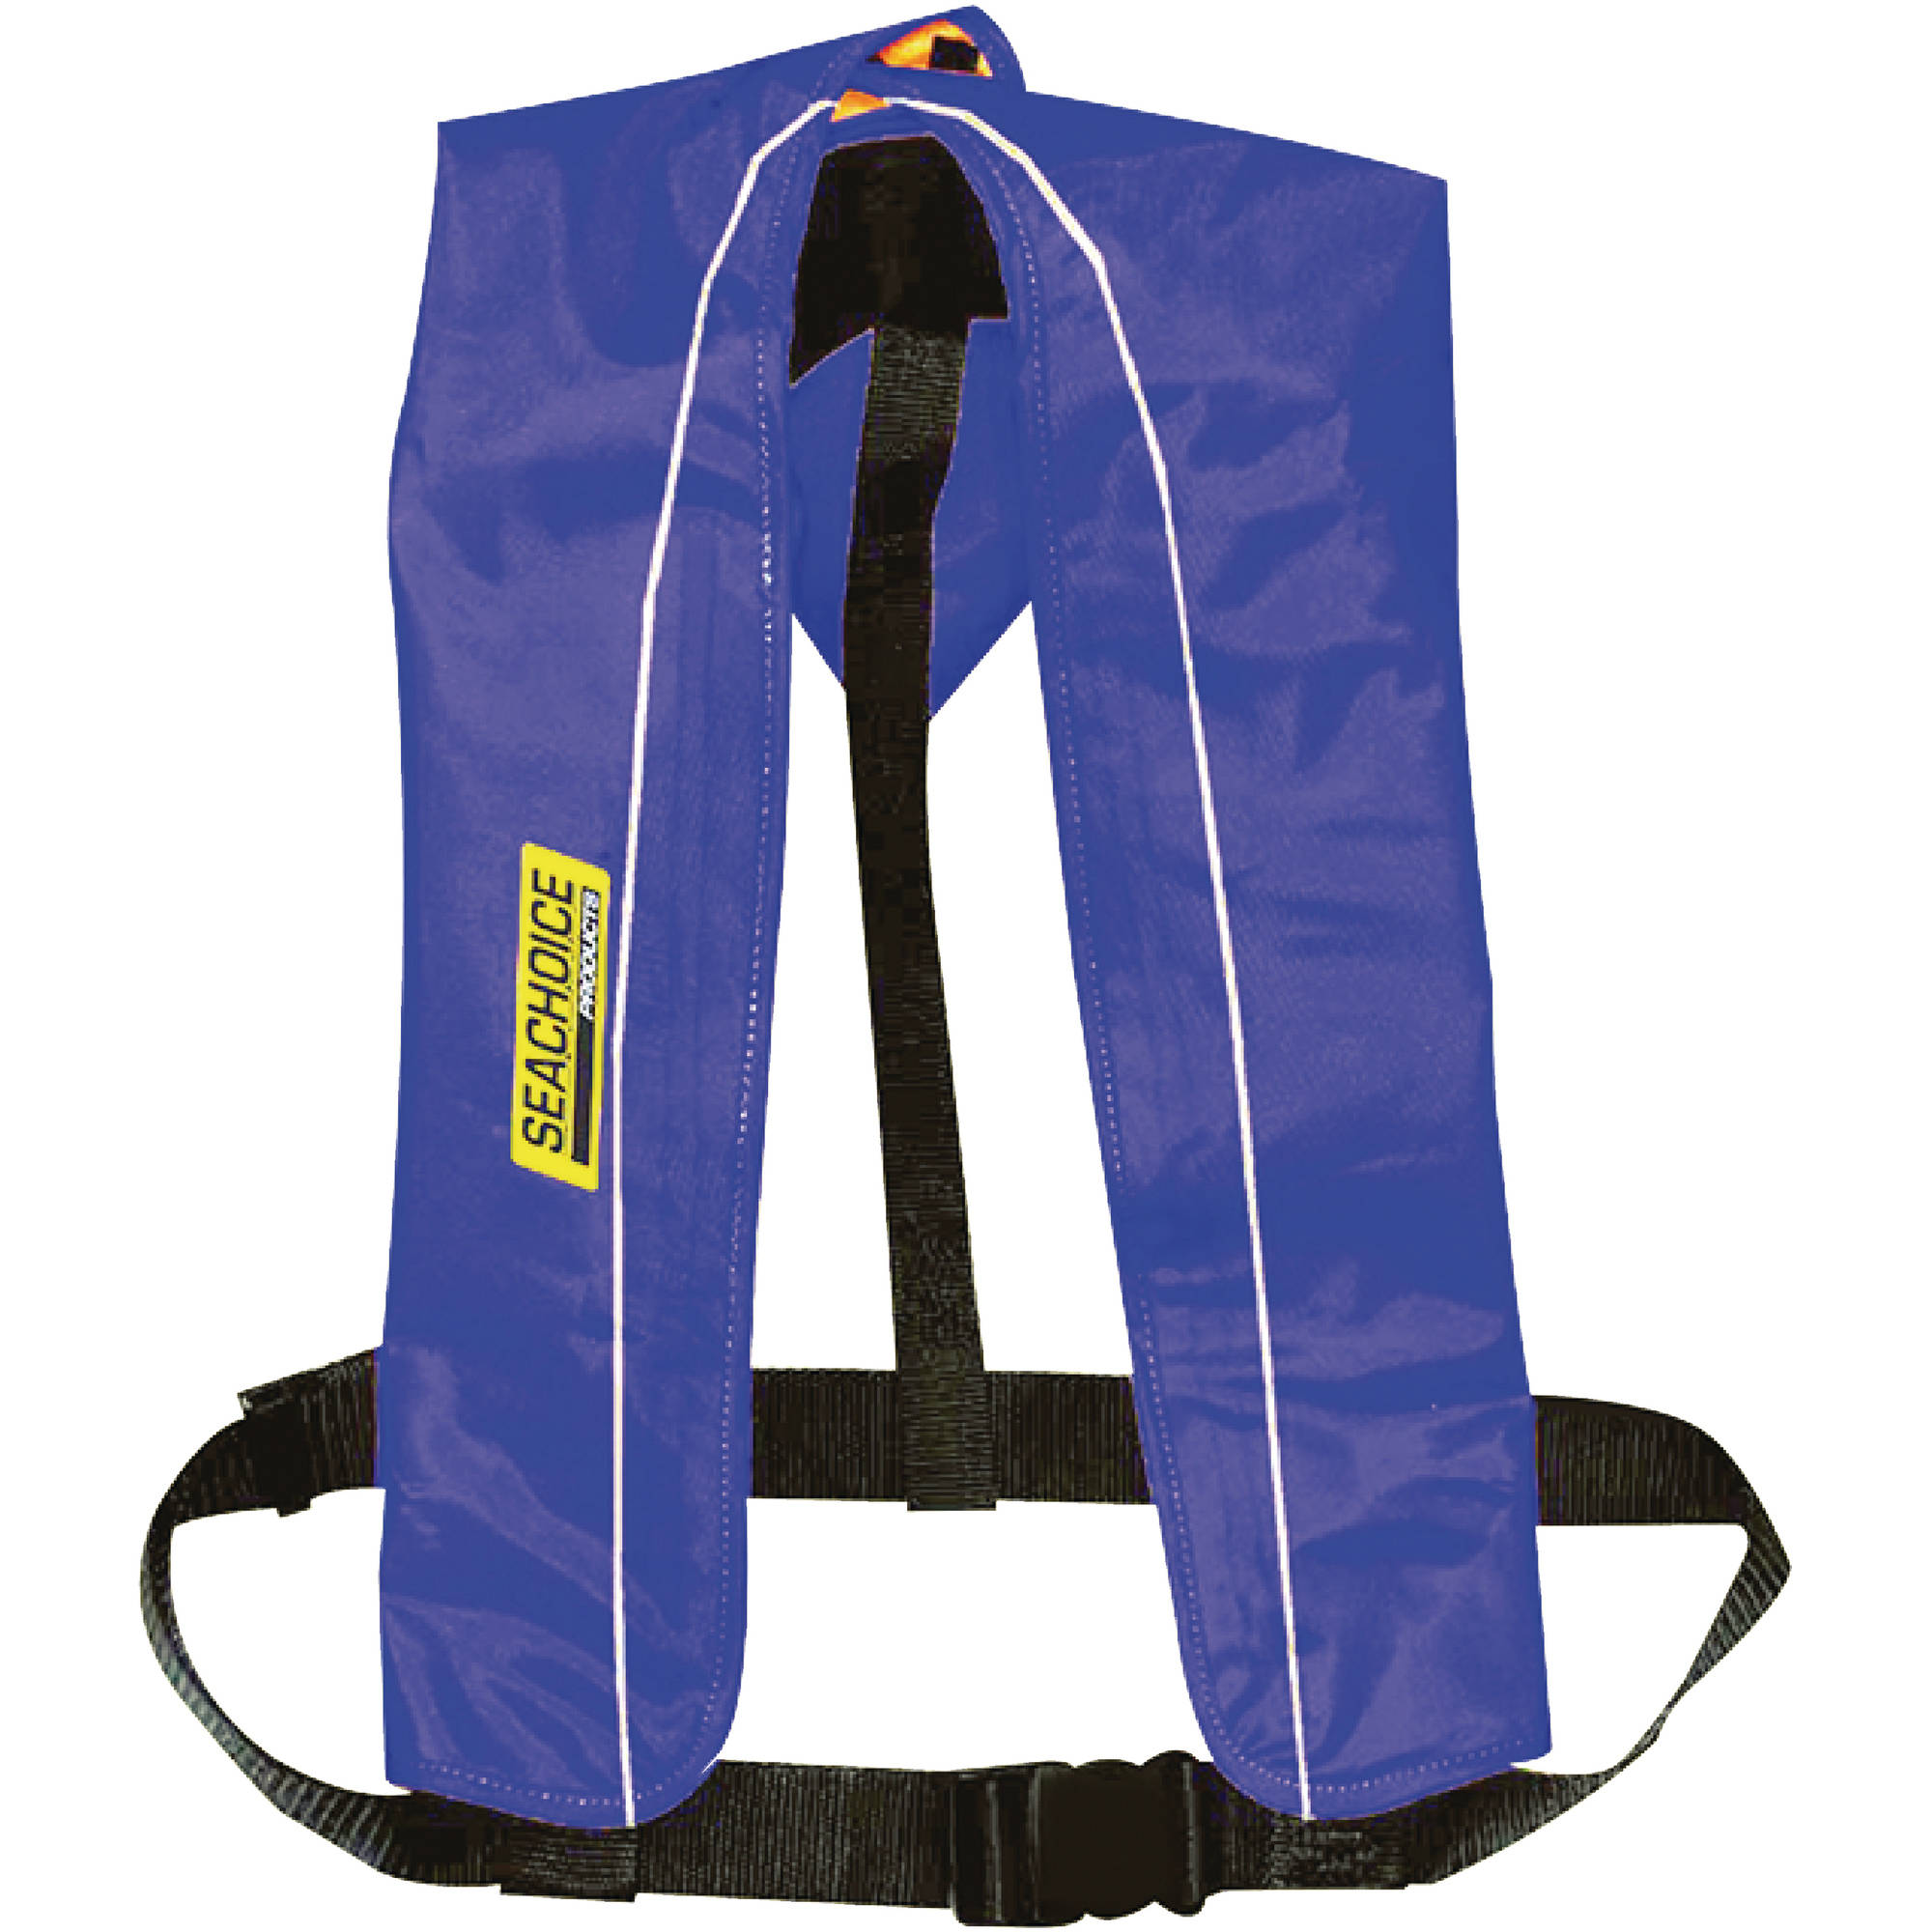 Seachoice Type V Inflatable PFD 24G Manual Auto, Blue by Seachoice Products